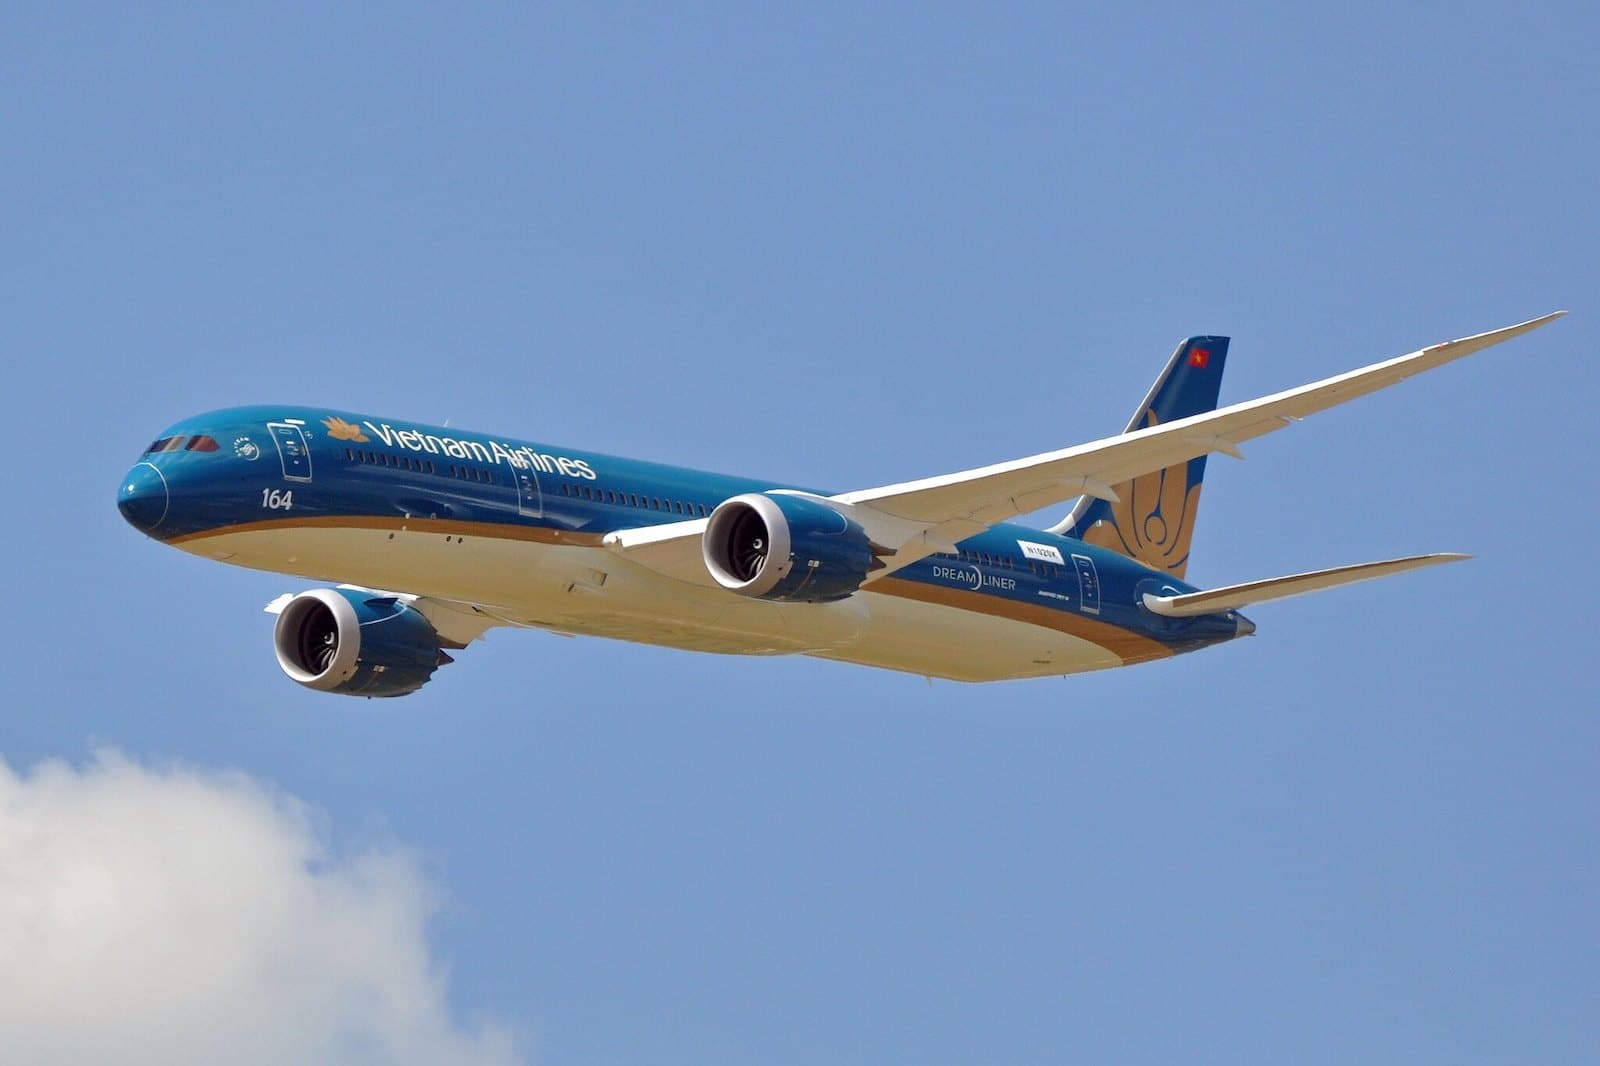 Image of a Vietnam Airlines plane in the sky